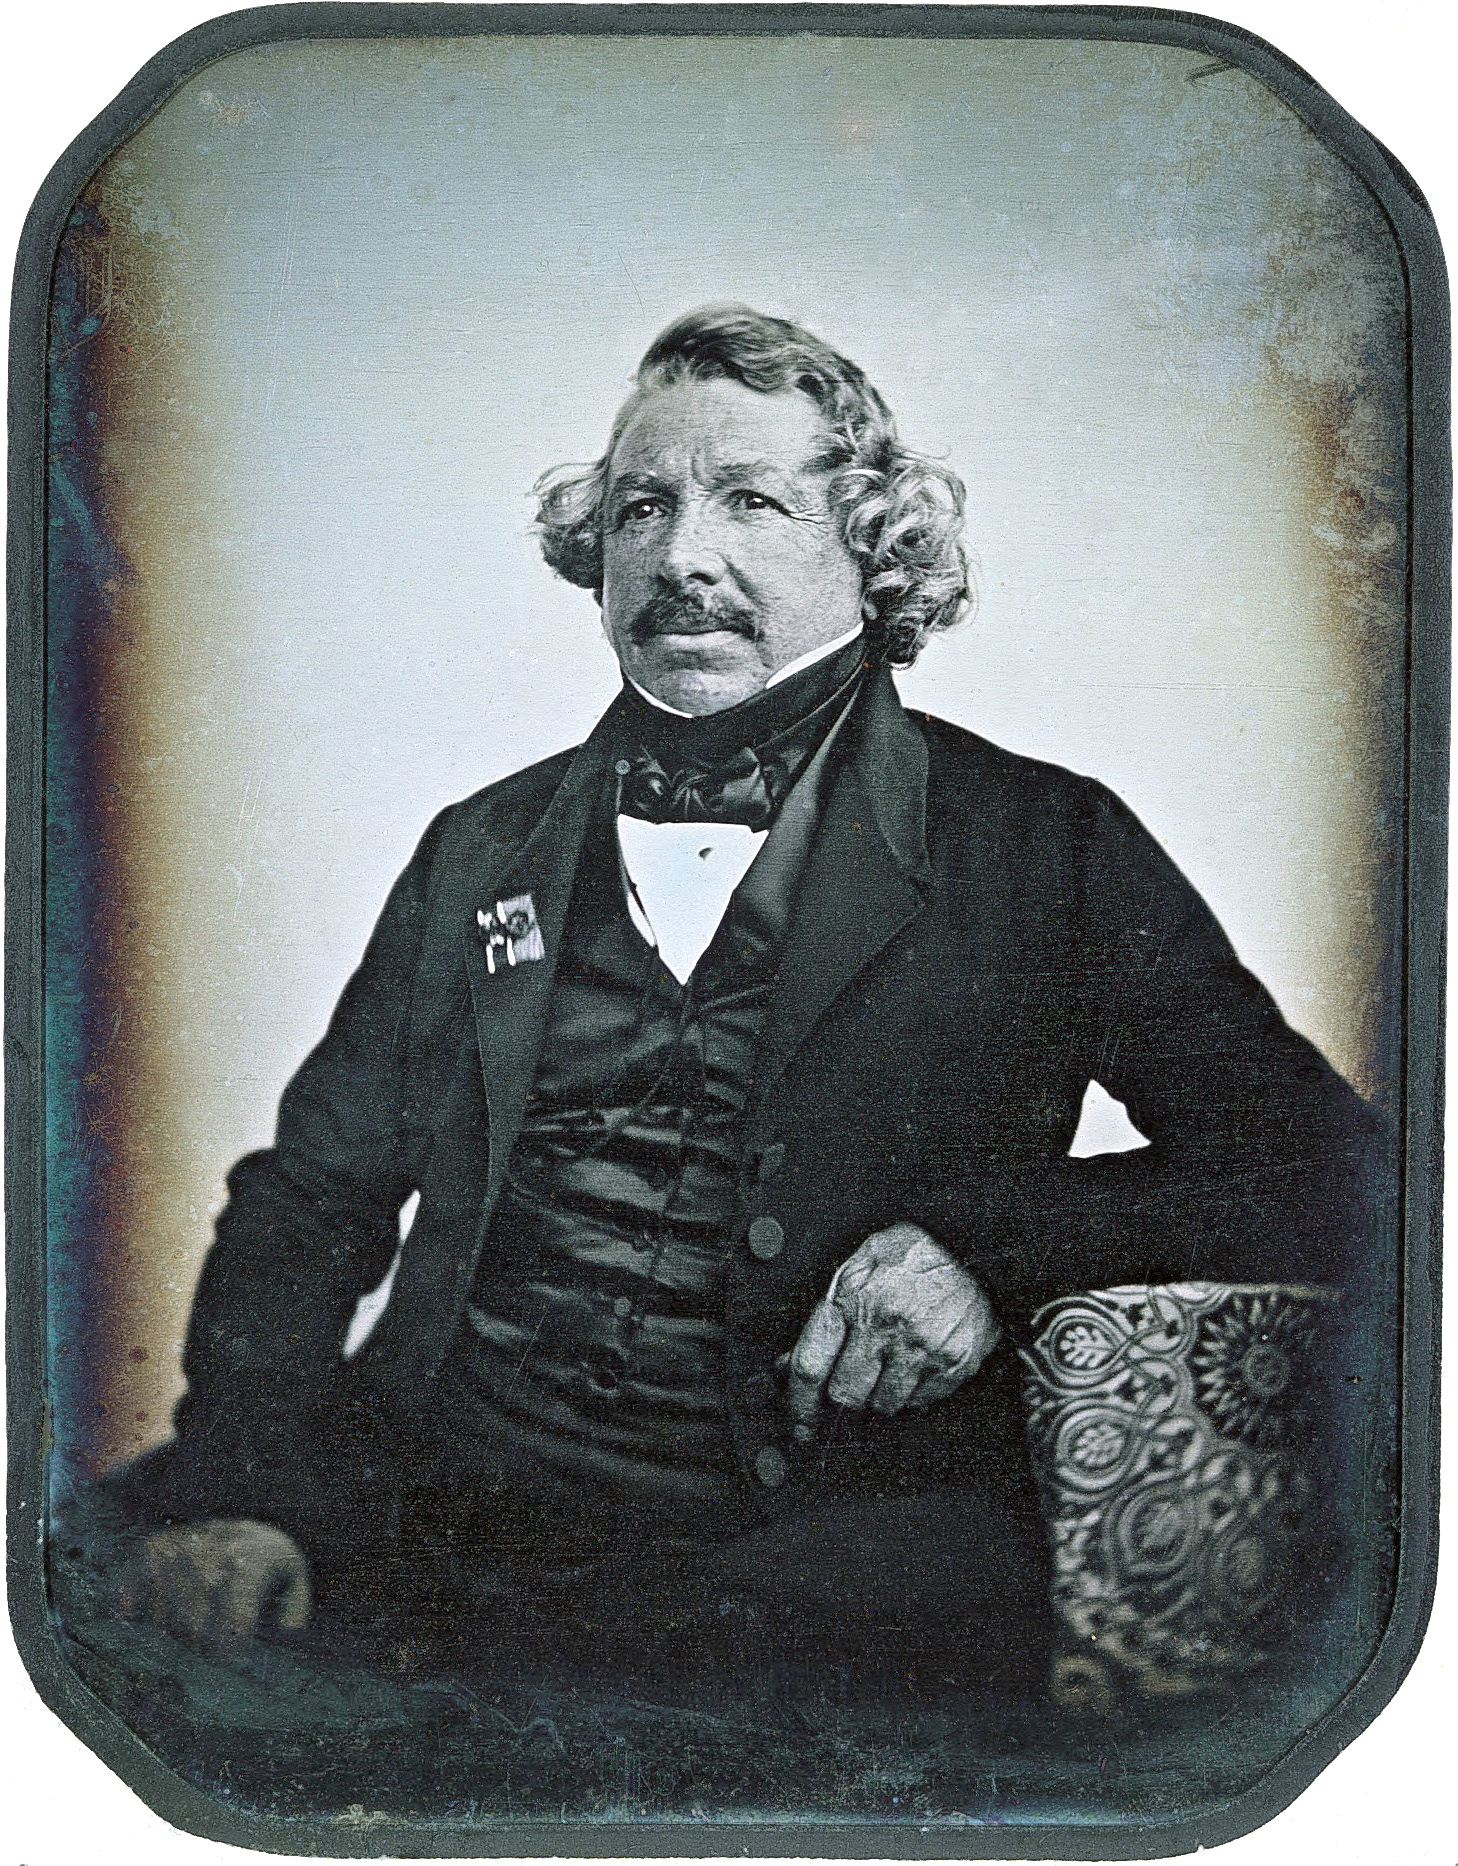 http://upload.wikimedia.org/wikipedia/commons/2/2e/Louis_Daguerre_2.jpg